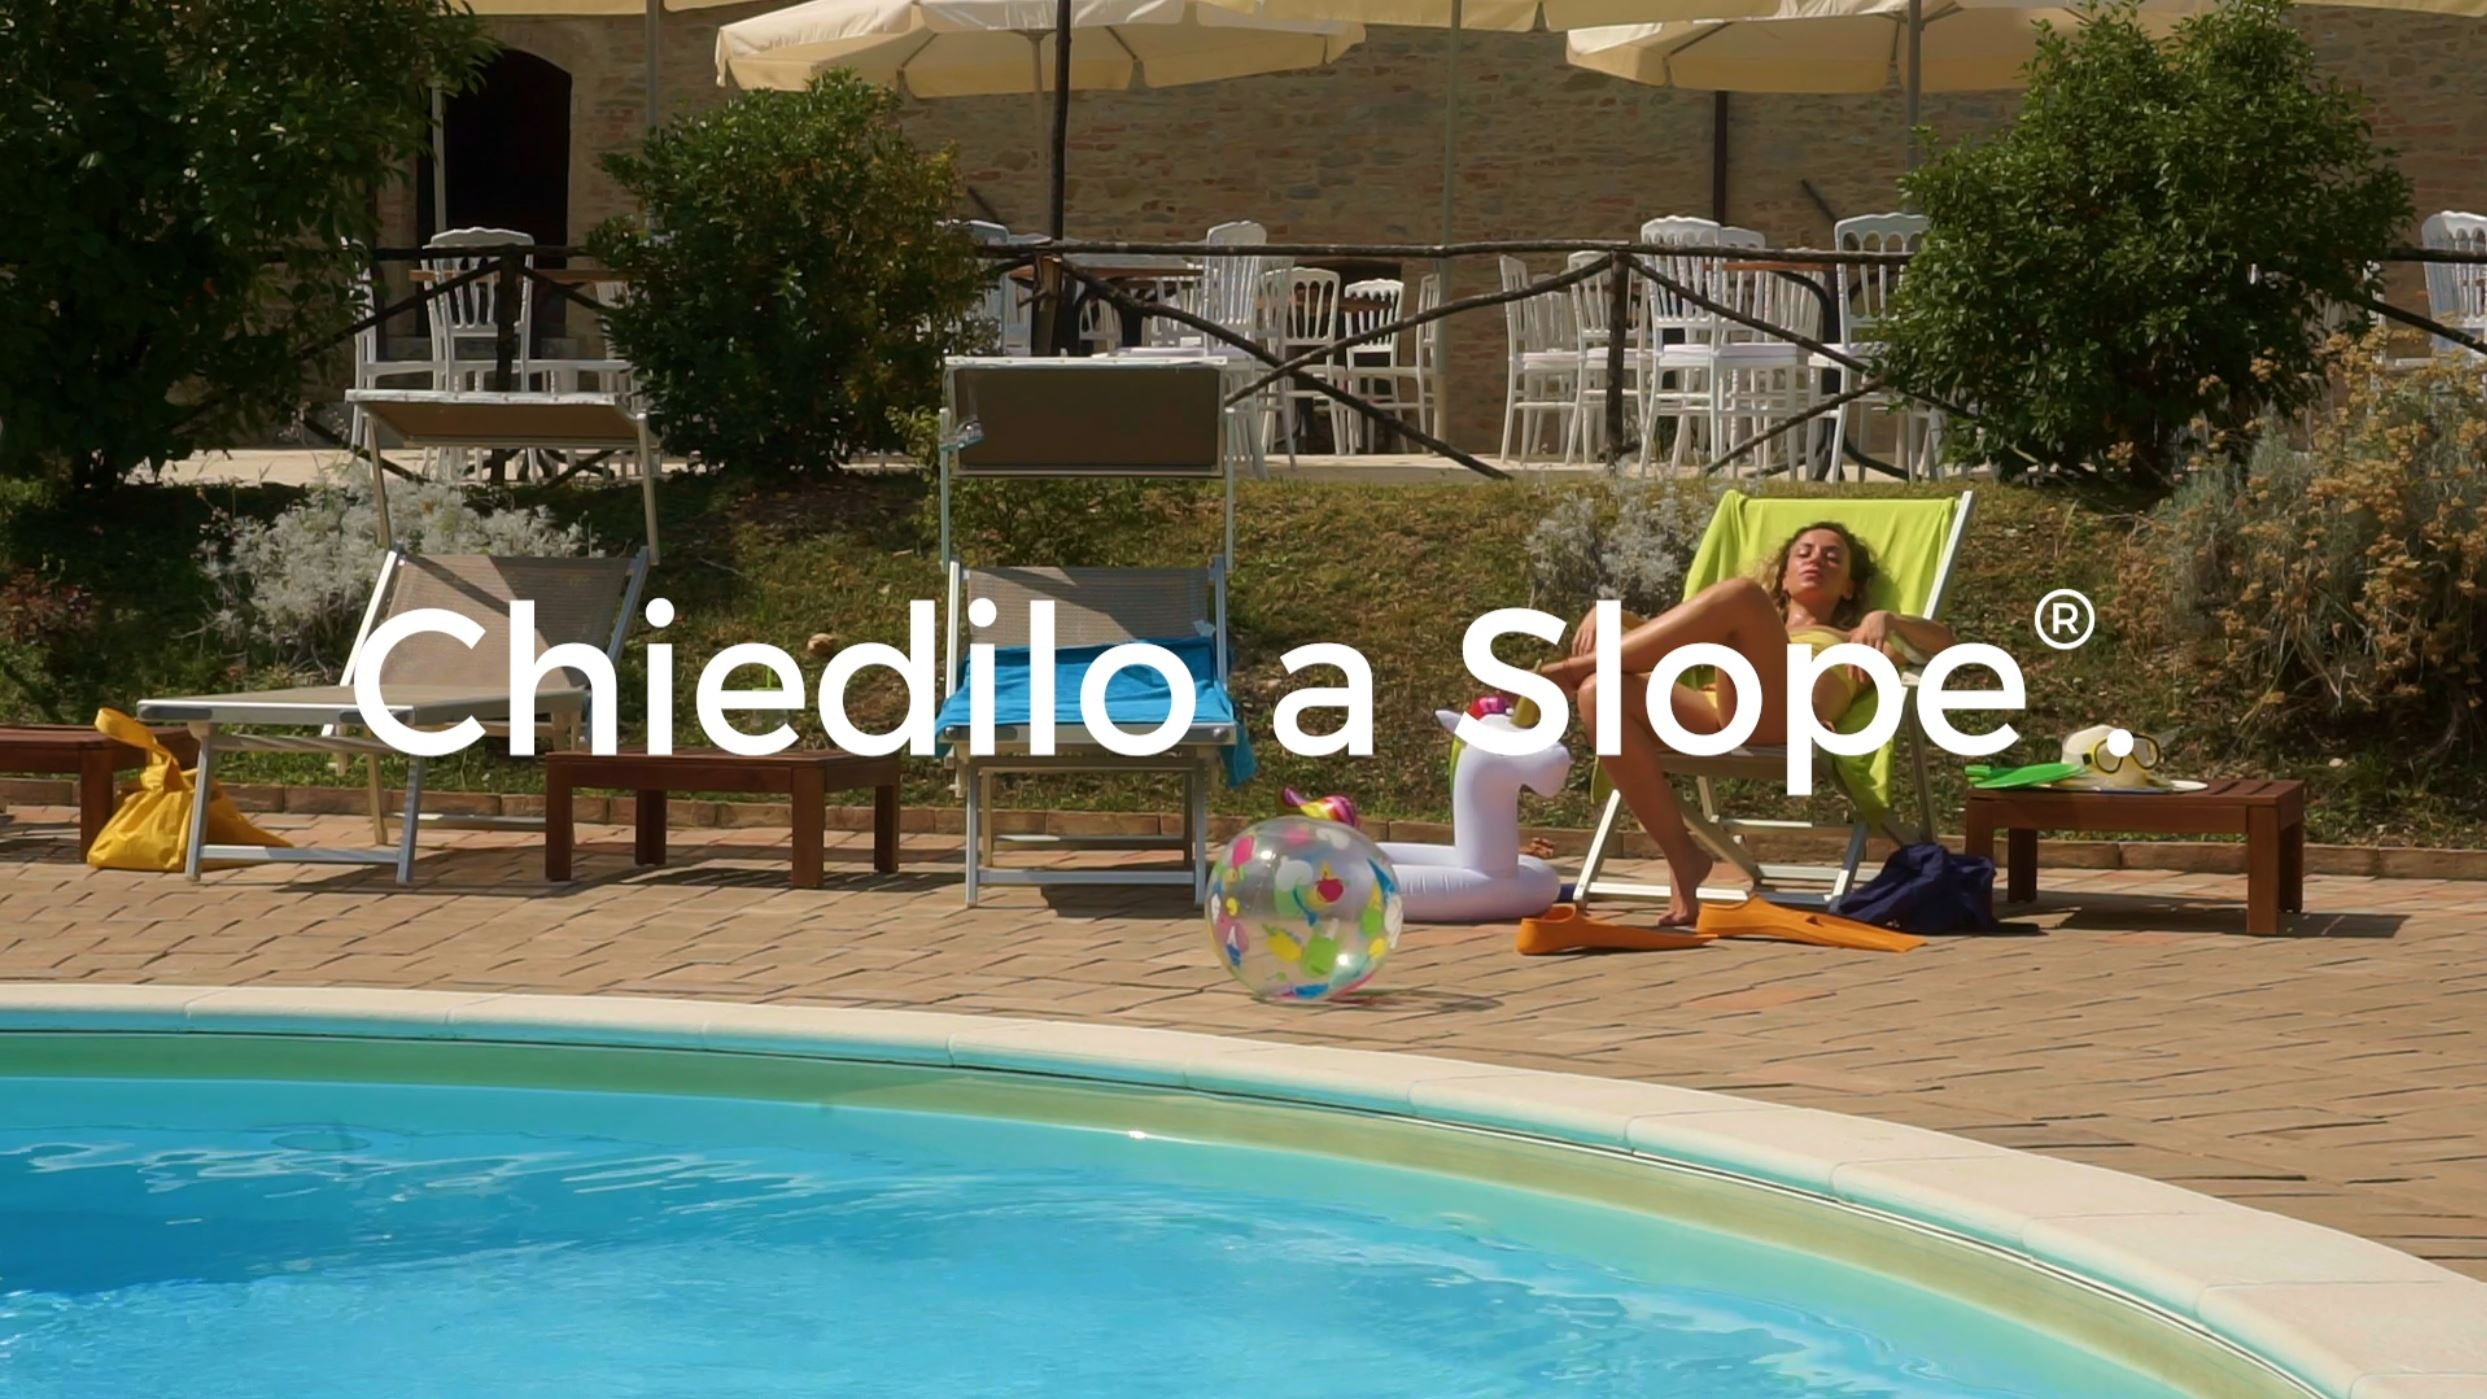 Chiedilo a Slope assistente vocale software gestionale hotel